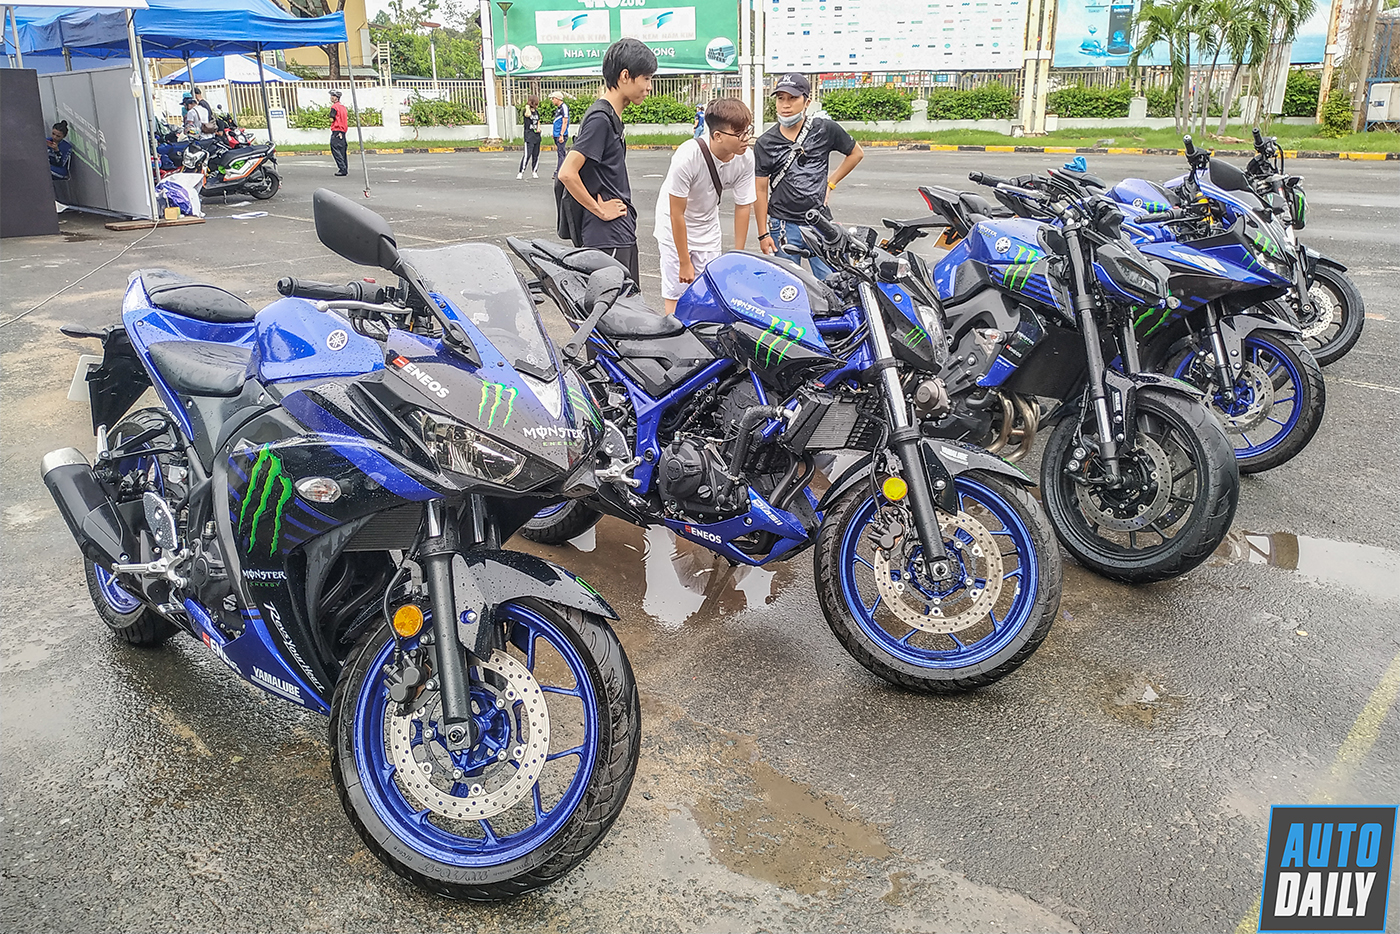 yamaha-monster-energy-11.jpg